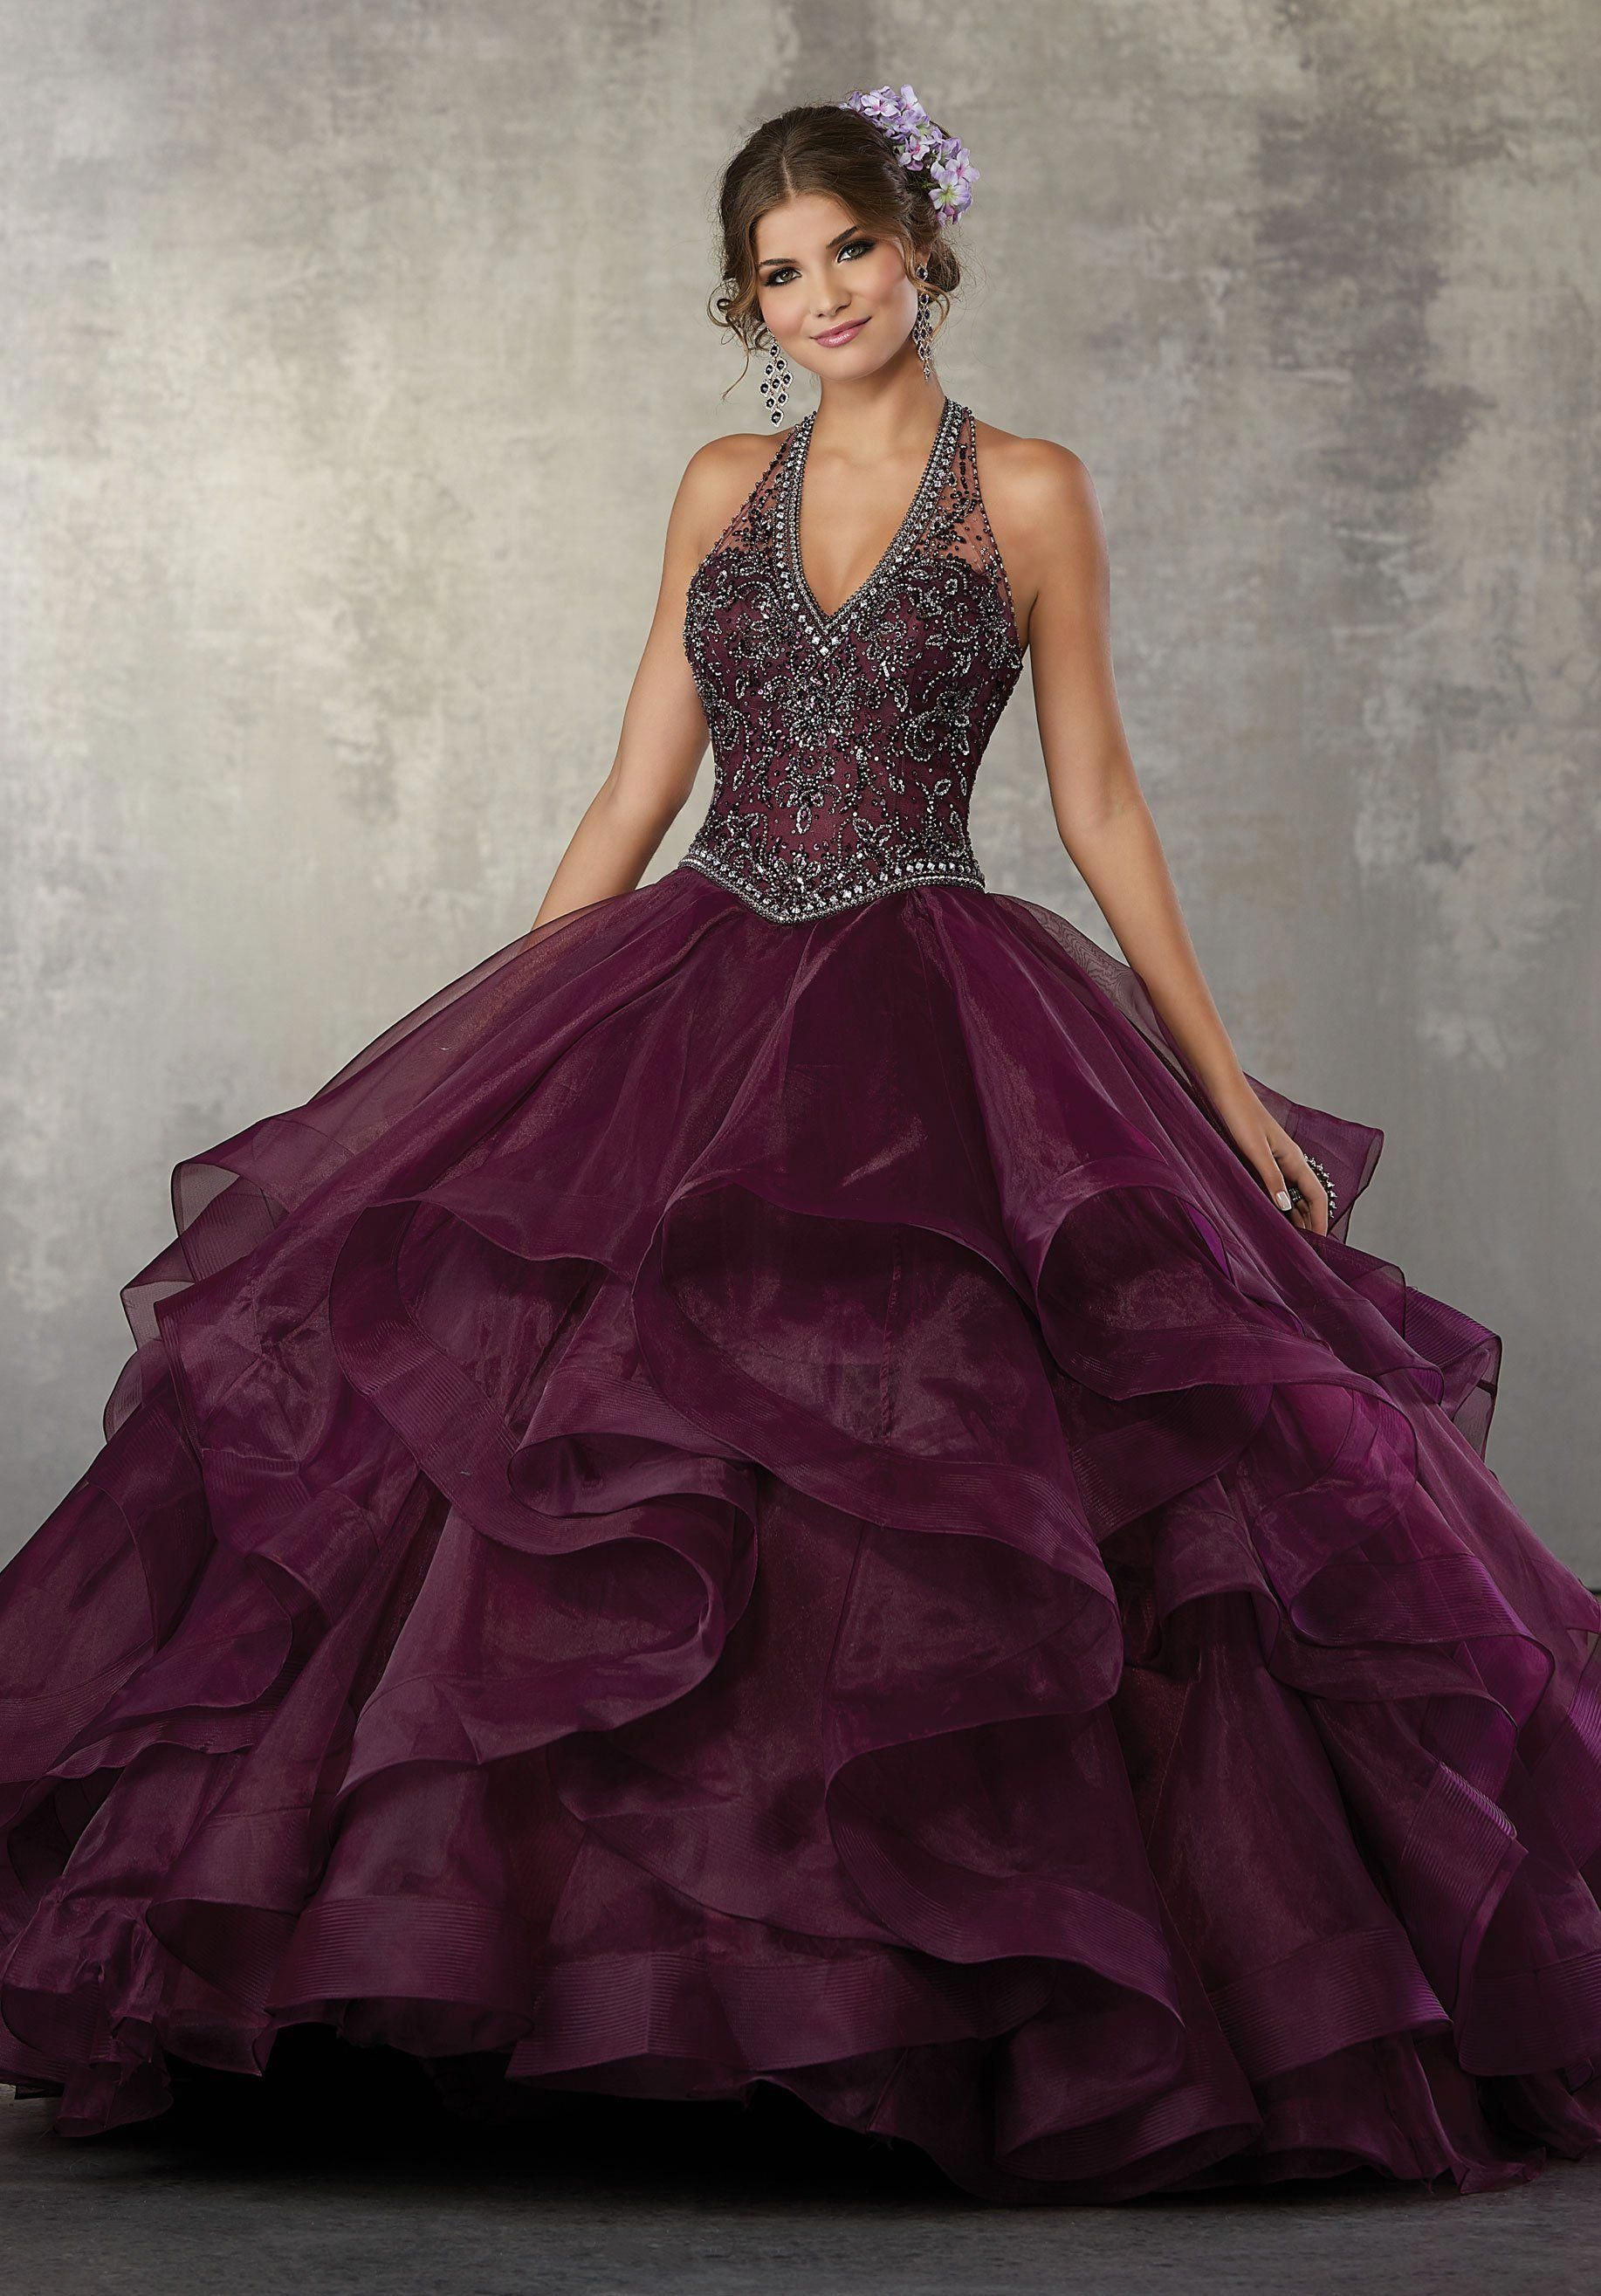 3a96ae62a52 Beaded Halter Quinceanera Dress by Mori Lee Vizcaya 89164   beautifulquinceaneradresses